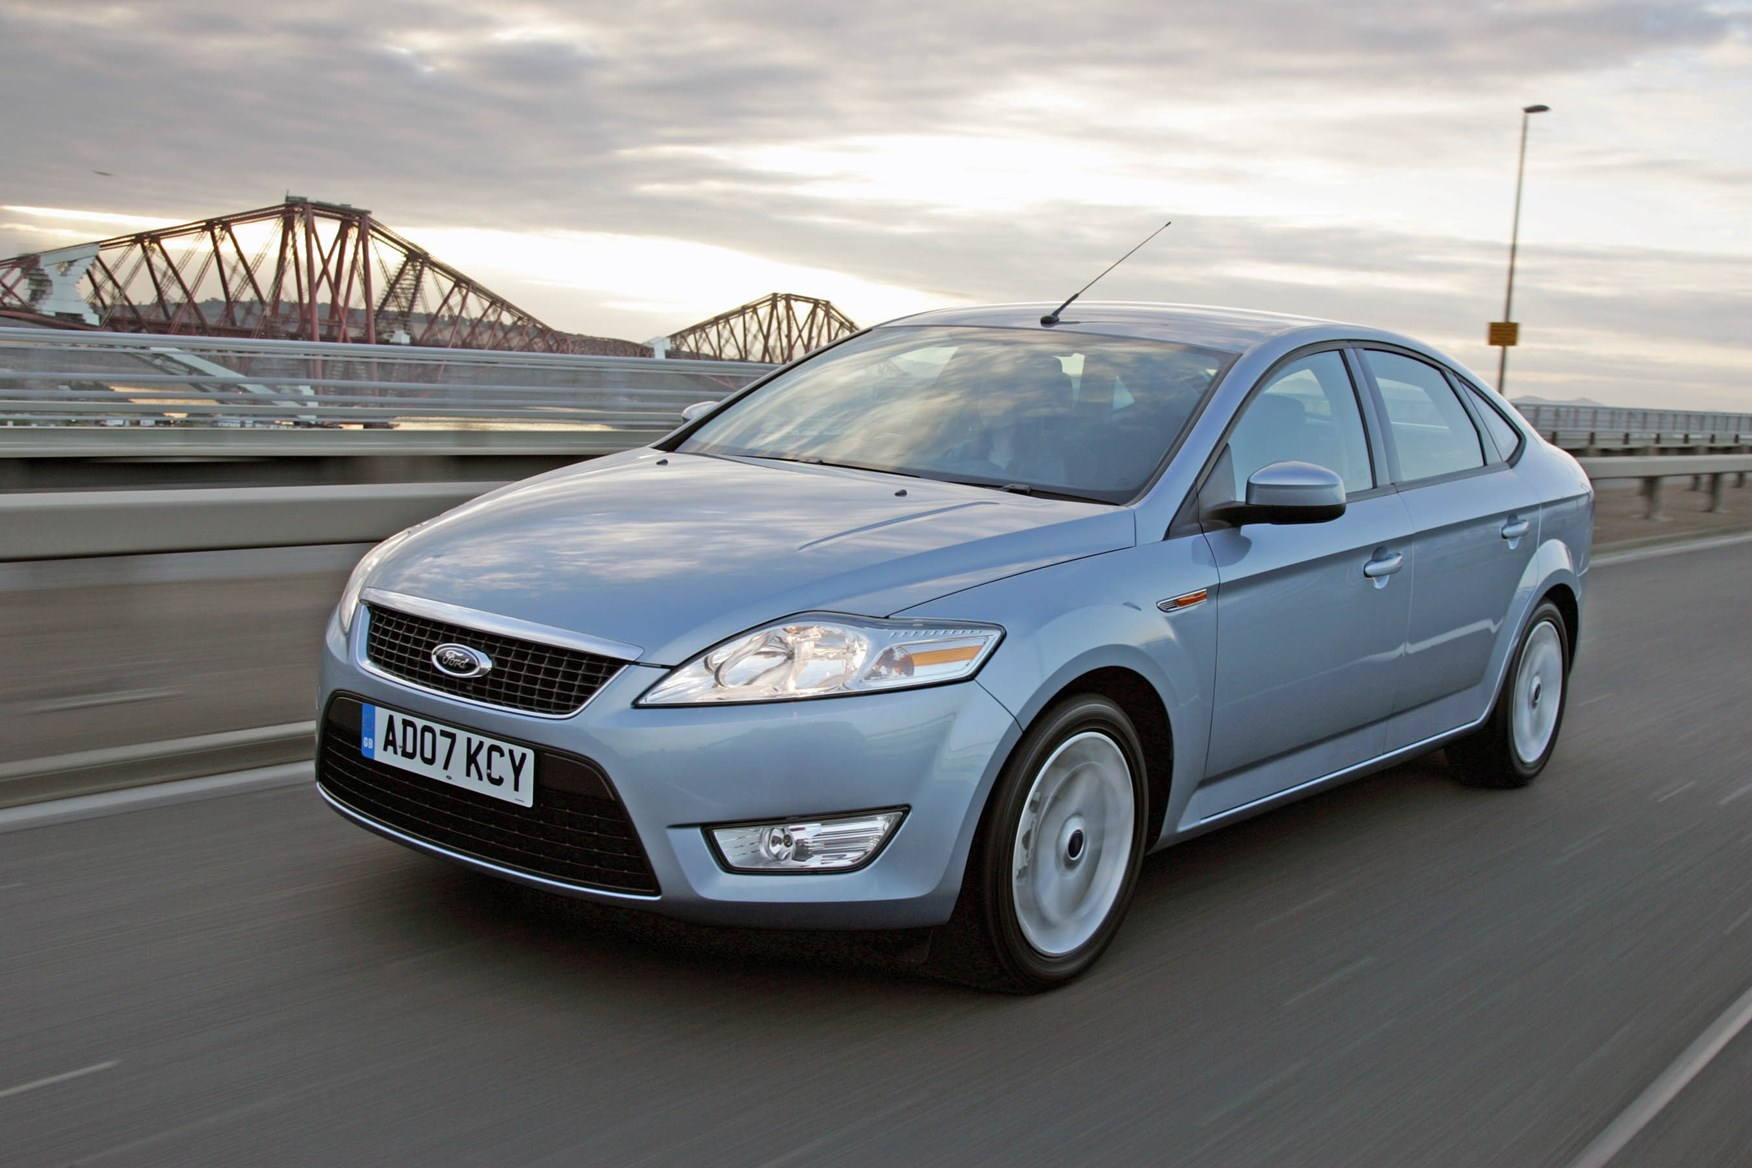 Ford Mondeo Hatchback Review 2007 2014 Parkers